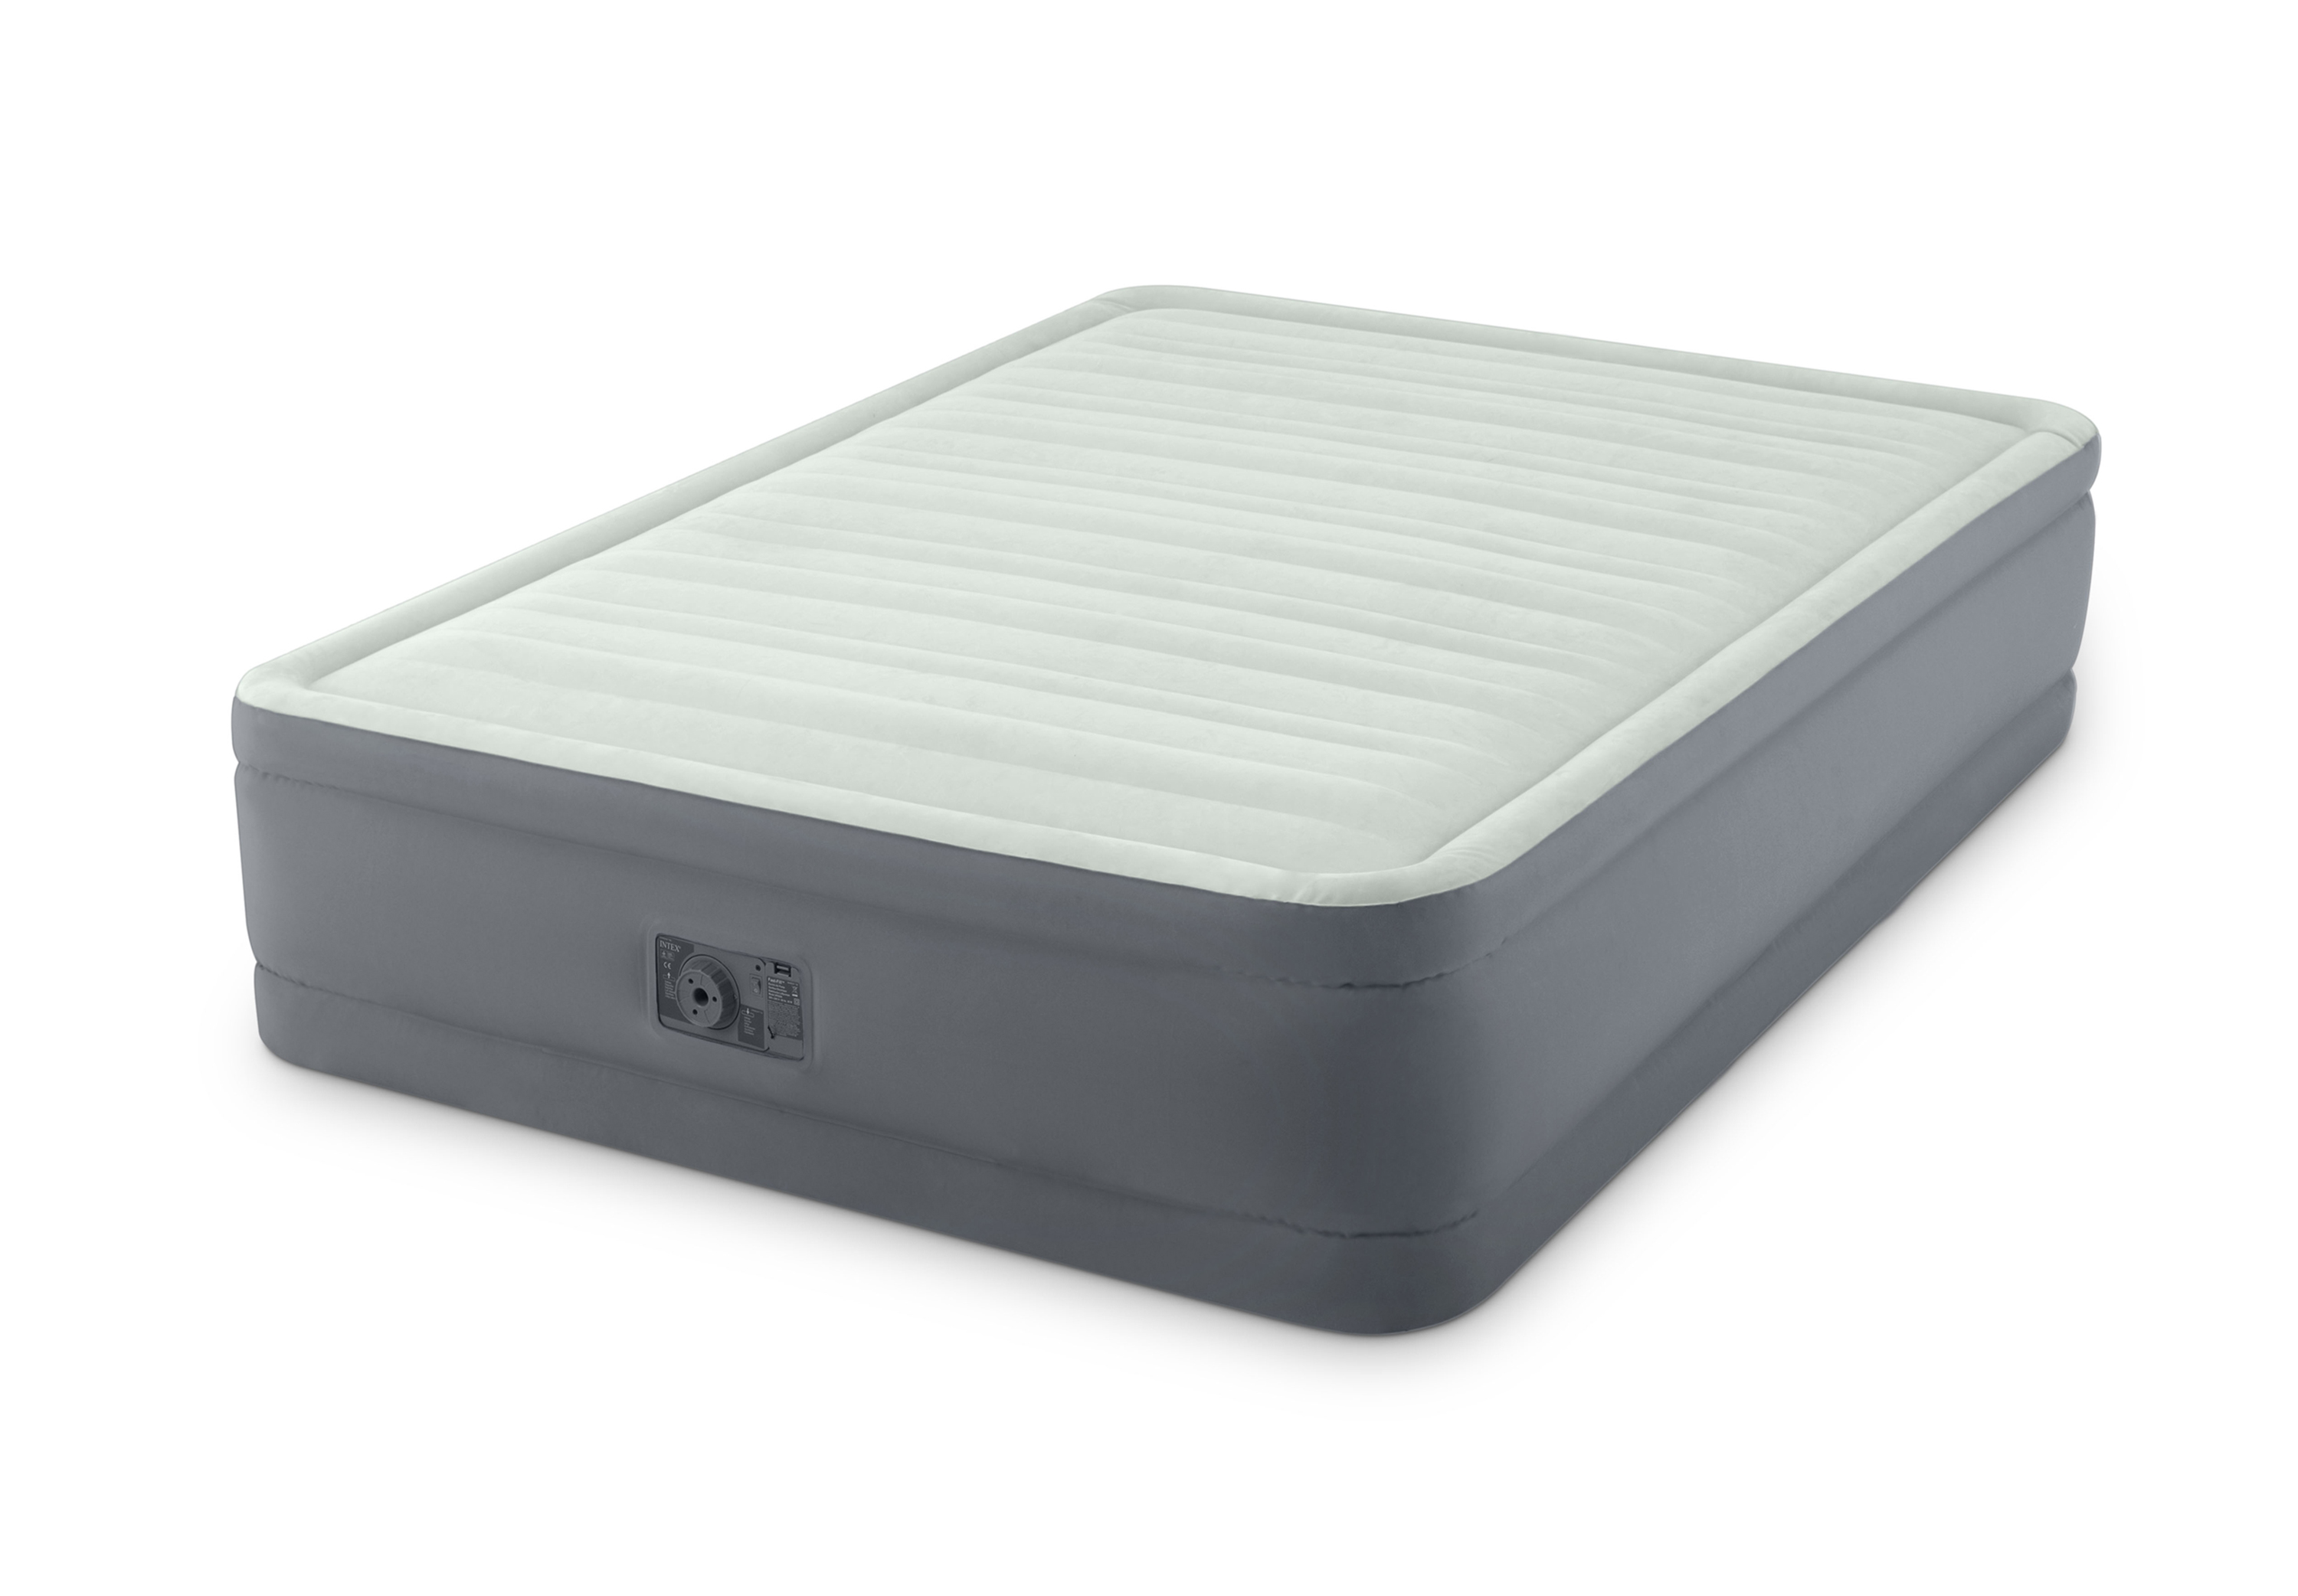 Intex Full Air Bed Details About Intex Full Size Raised Elevated Premaire Air Mattress Bed W Pump 64903e